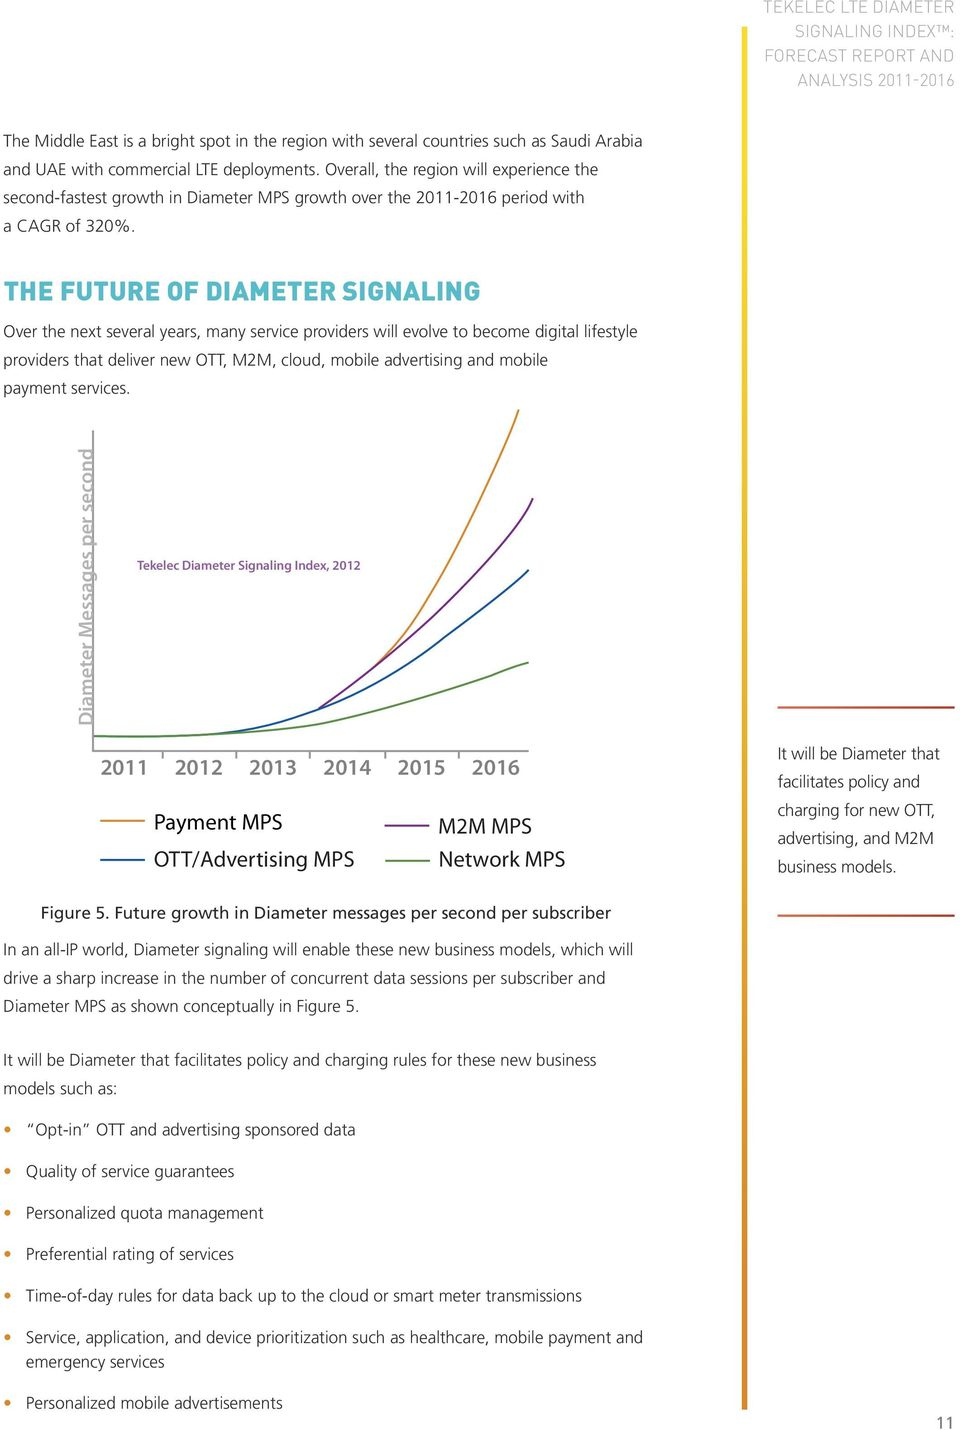 the FuturE of diameter Signaling Over the next several years, many service providers will evolve to become digital lifestyle providers that deliver new OTT, M2M, cloud, mobile advertising and mobile